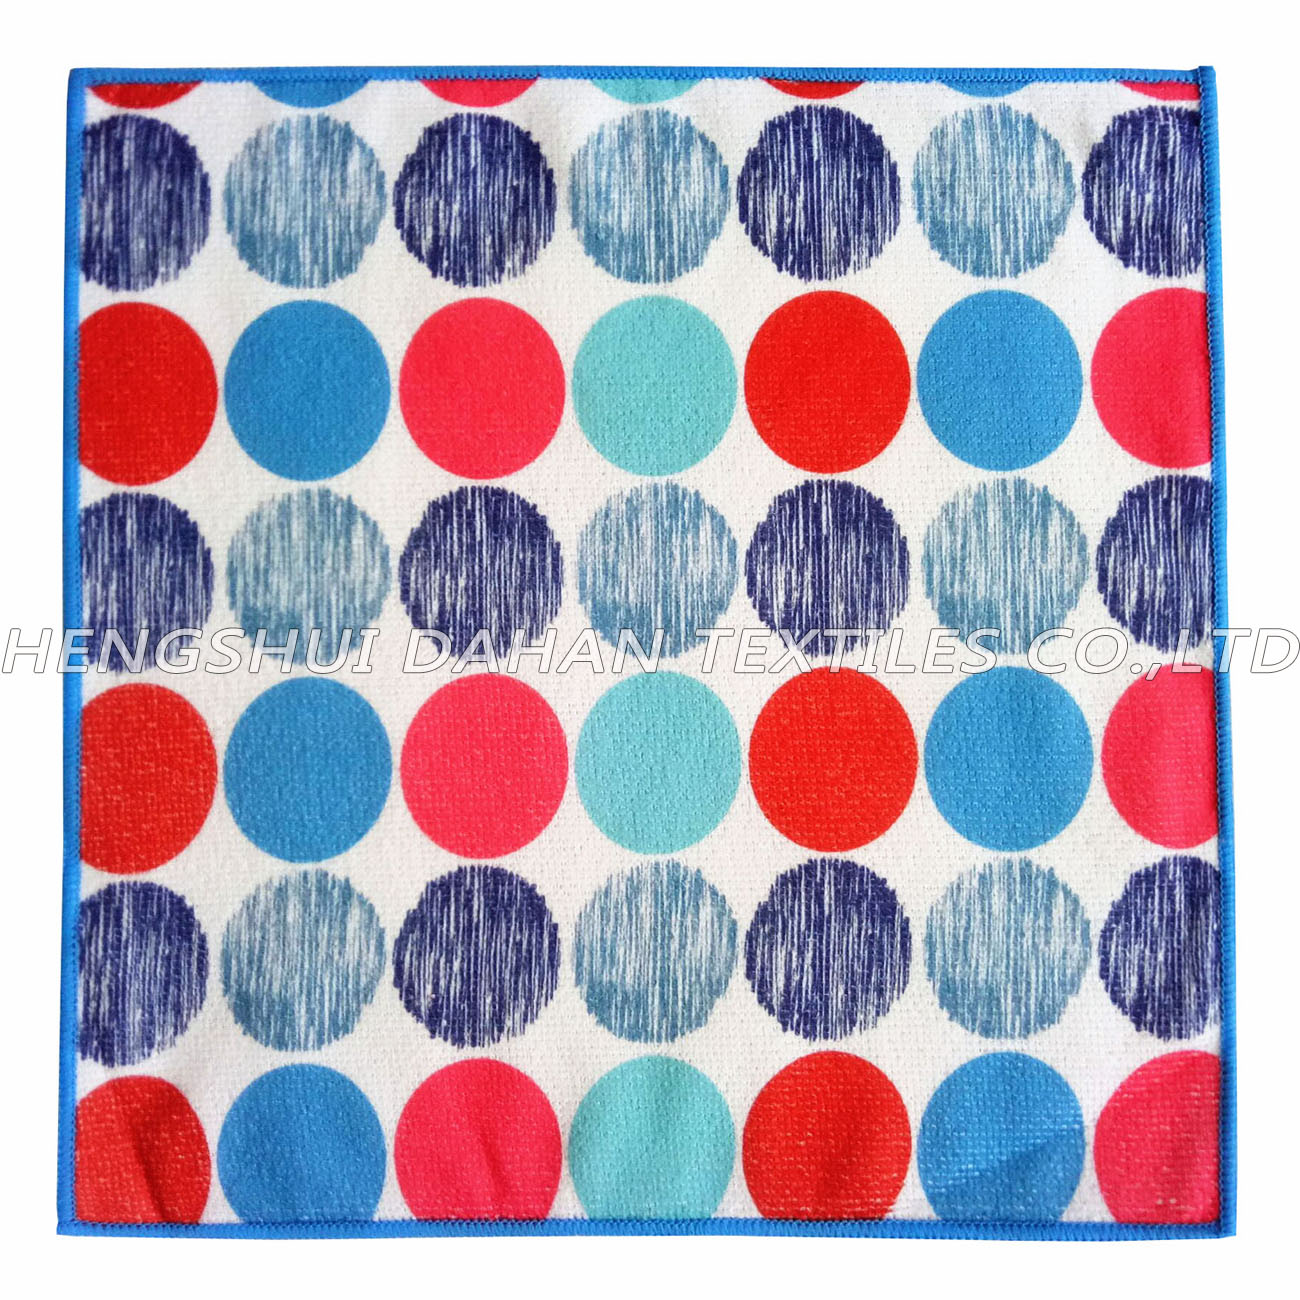 DH-MH04 100%polyester printing microfiber towel